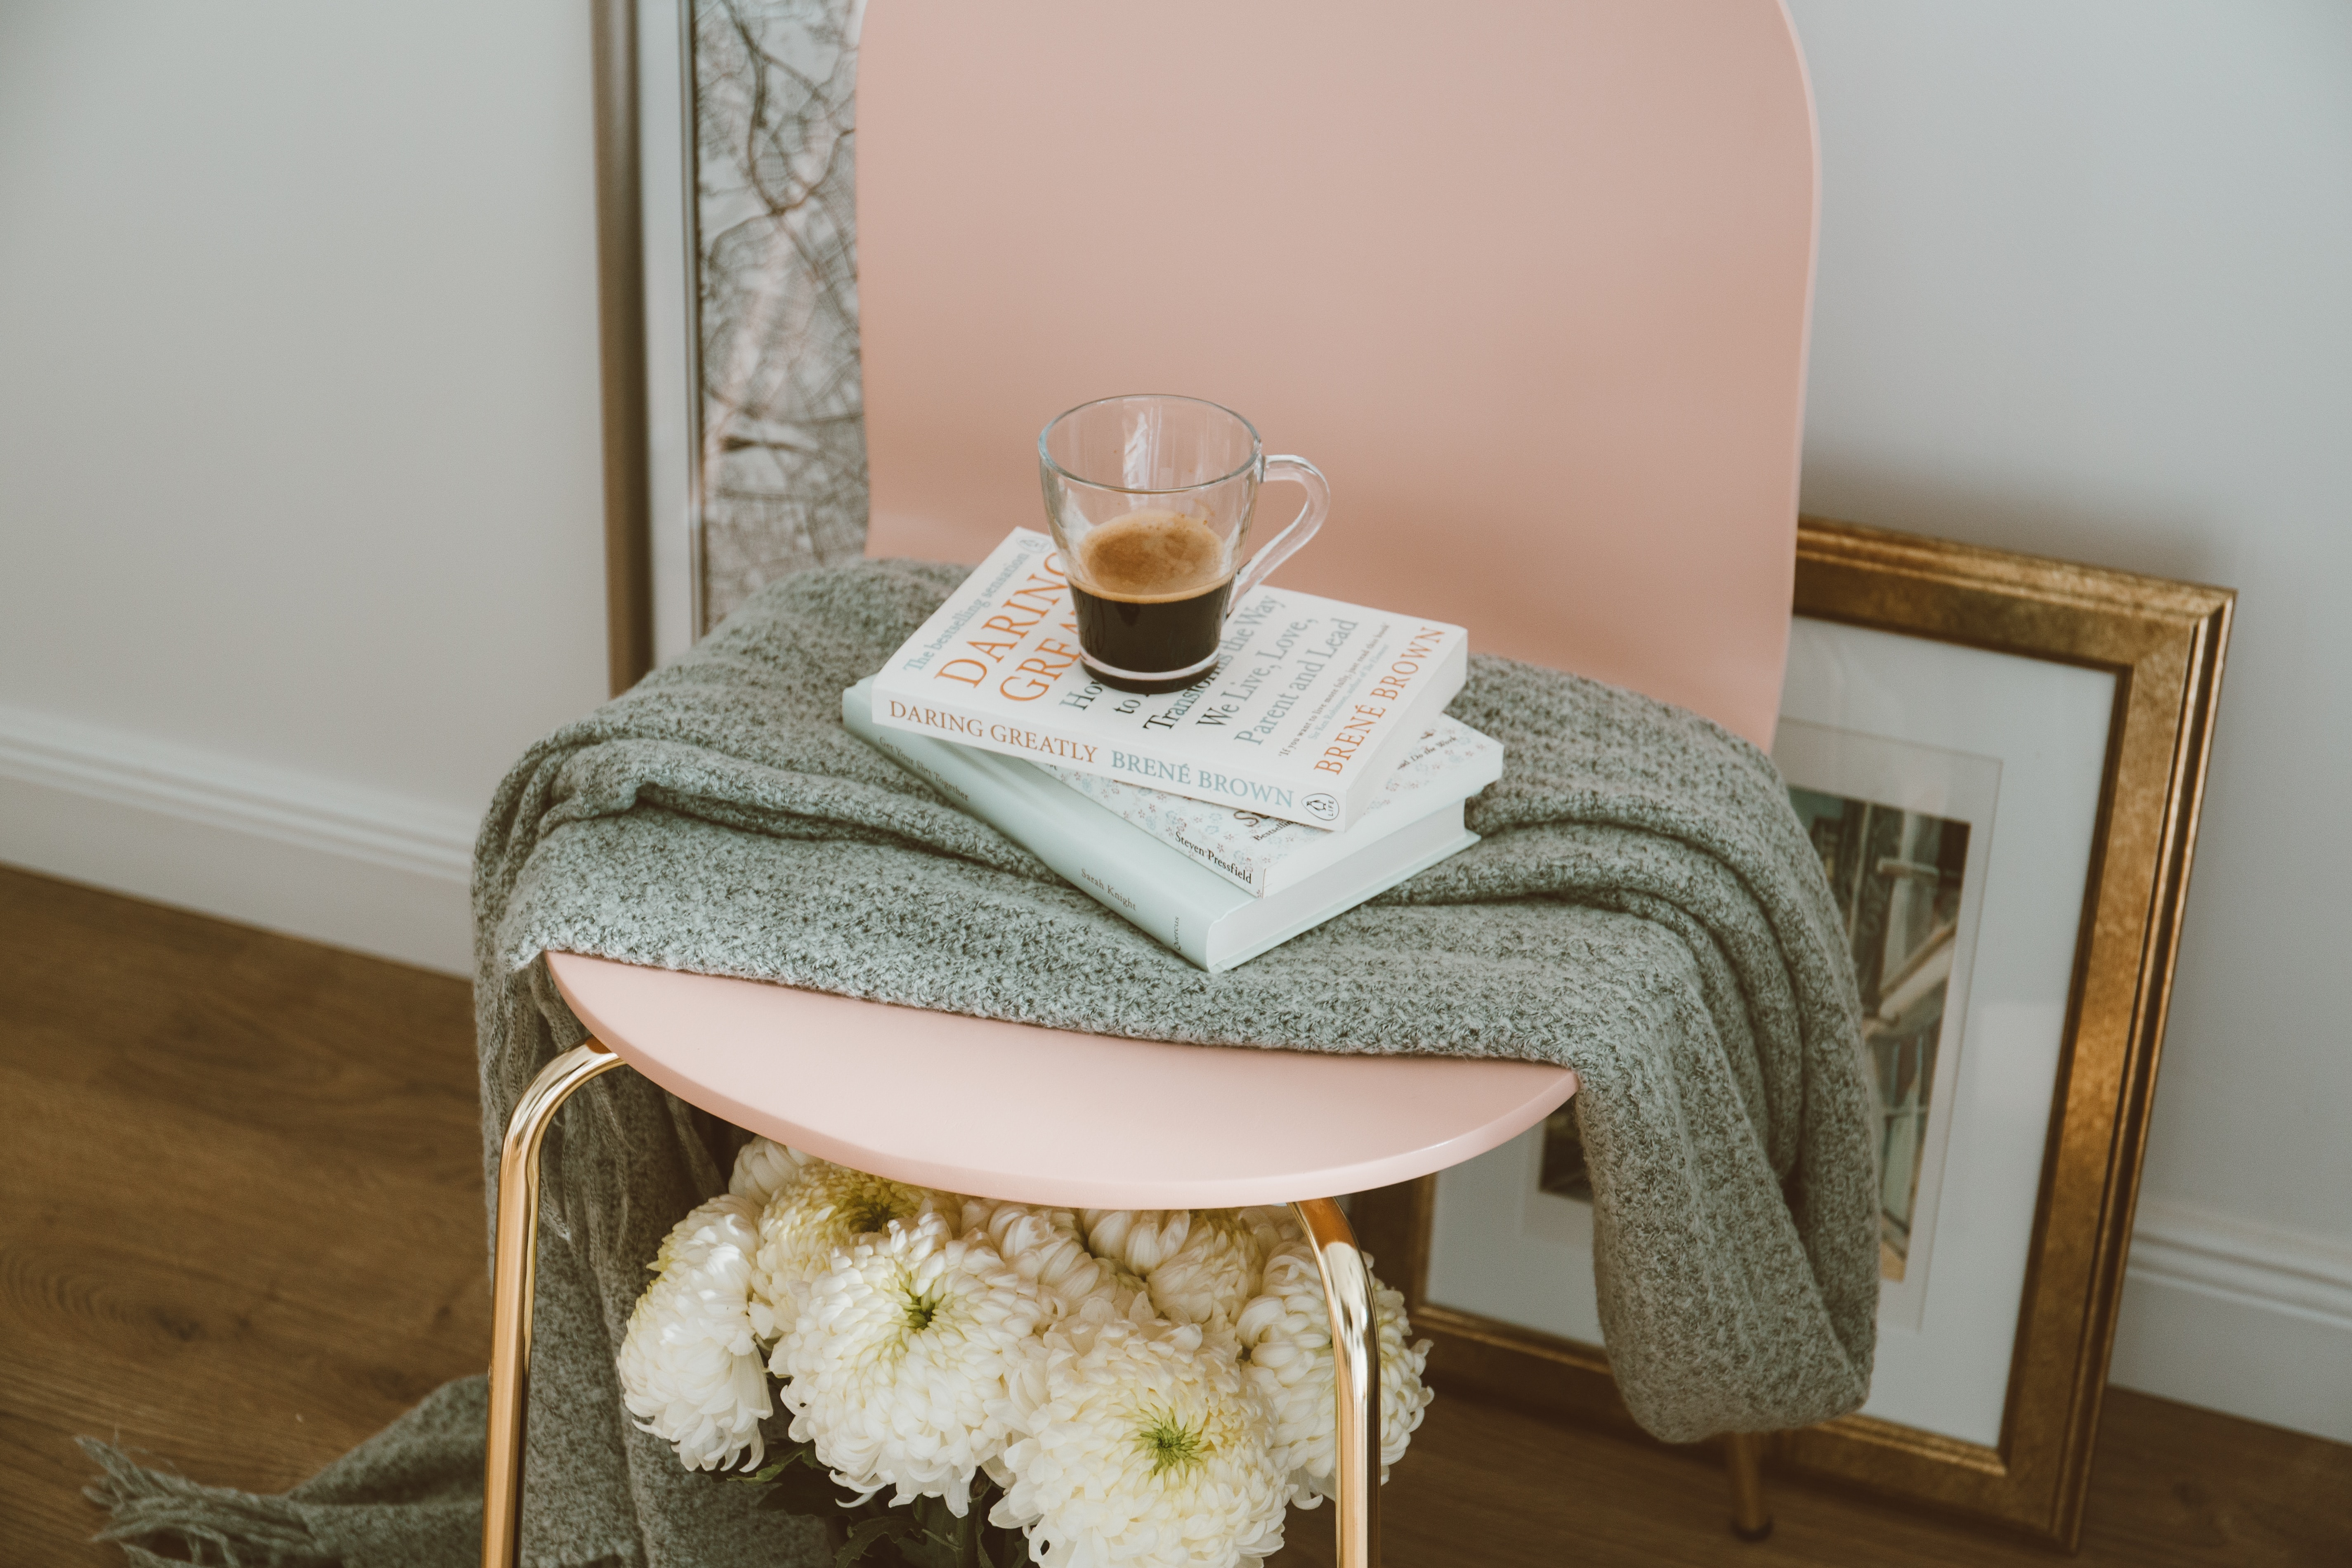 A blush pink chair with gold legs is stood upon dark wooden floors. Underneath the chair is a bunch of white flowers. On top of the chair is a grey throw, three books and on top of the books is a black coffee in a clear glass mug.